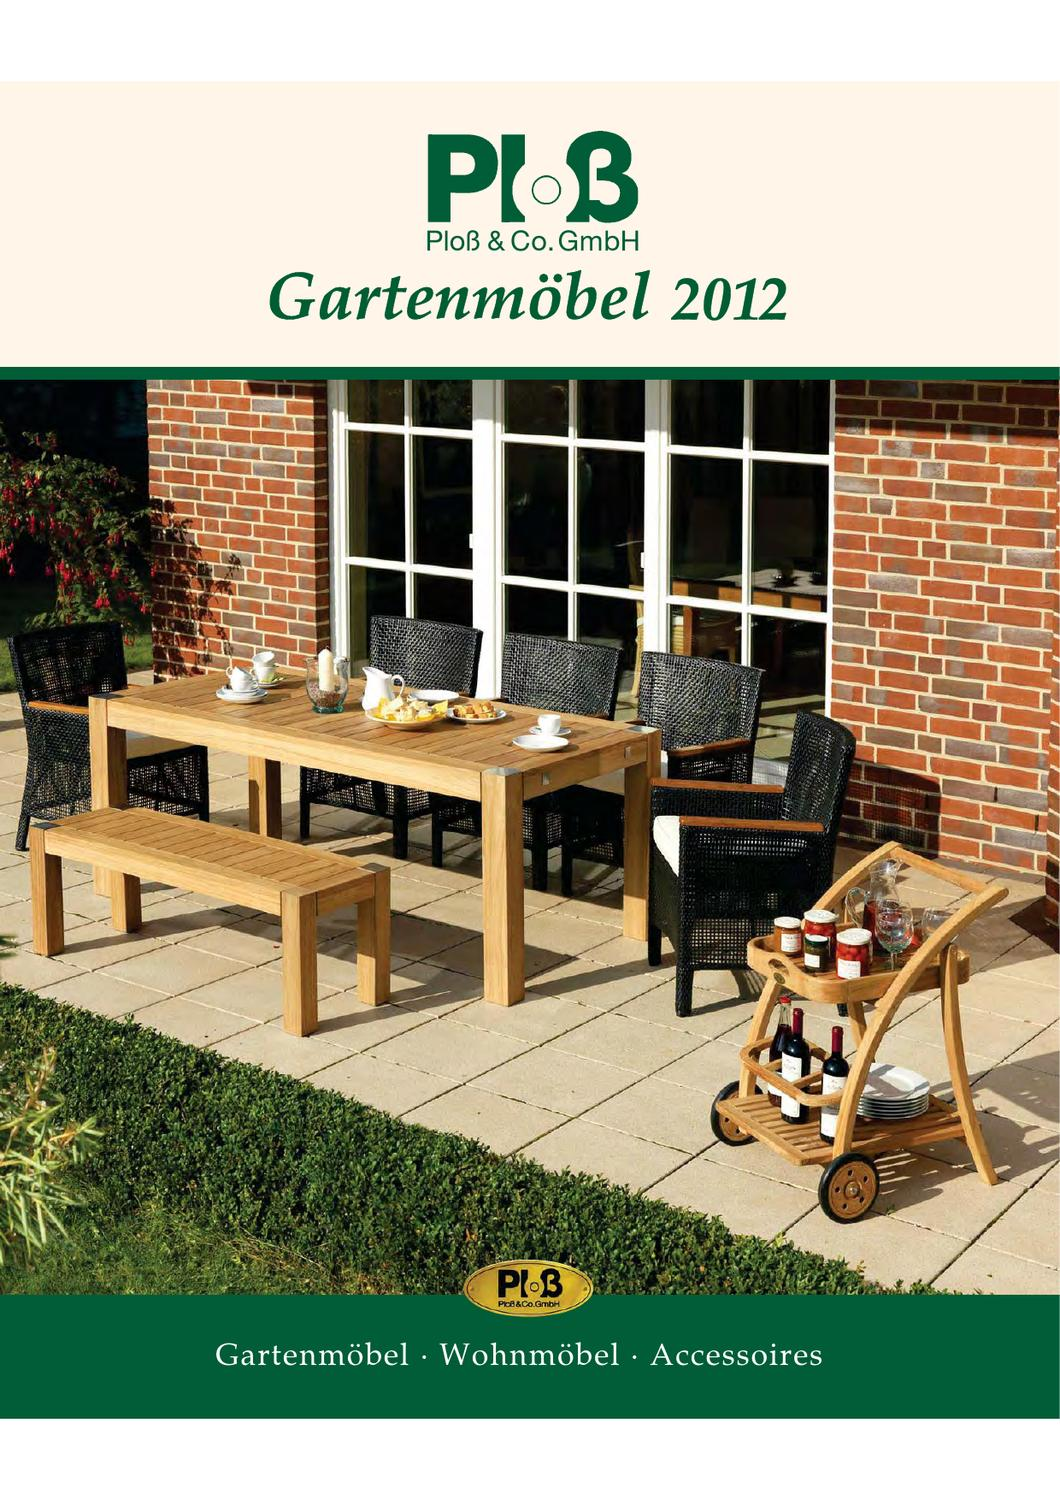 plo gartenm bel aus holz by friedrich lembke issuu. Black Bedroom Furniture Sets. Home Design Ideas